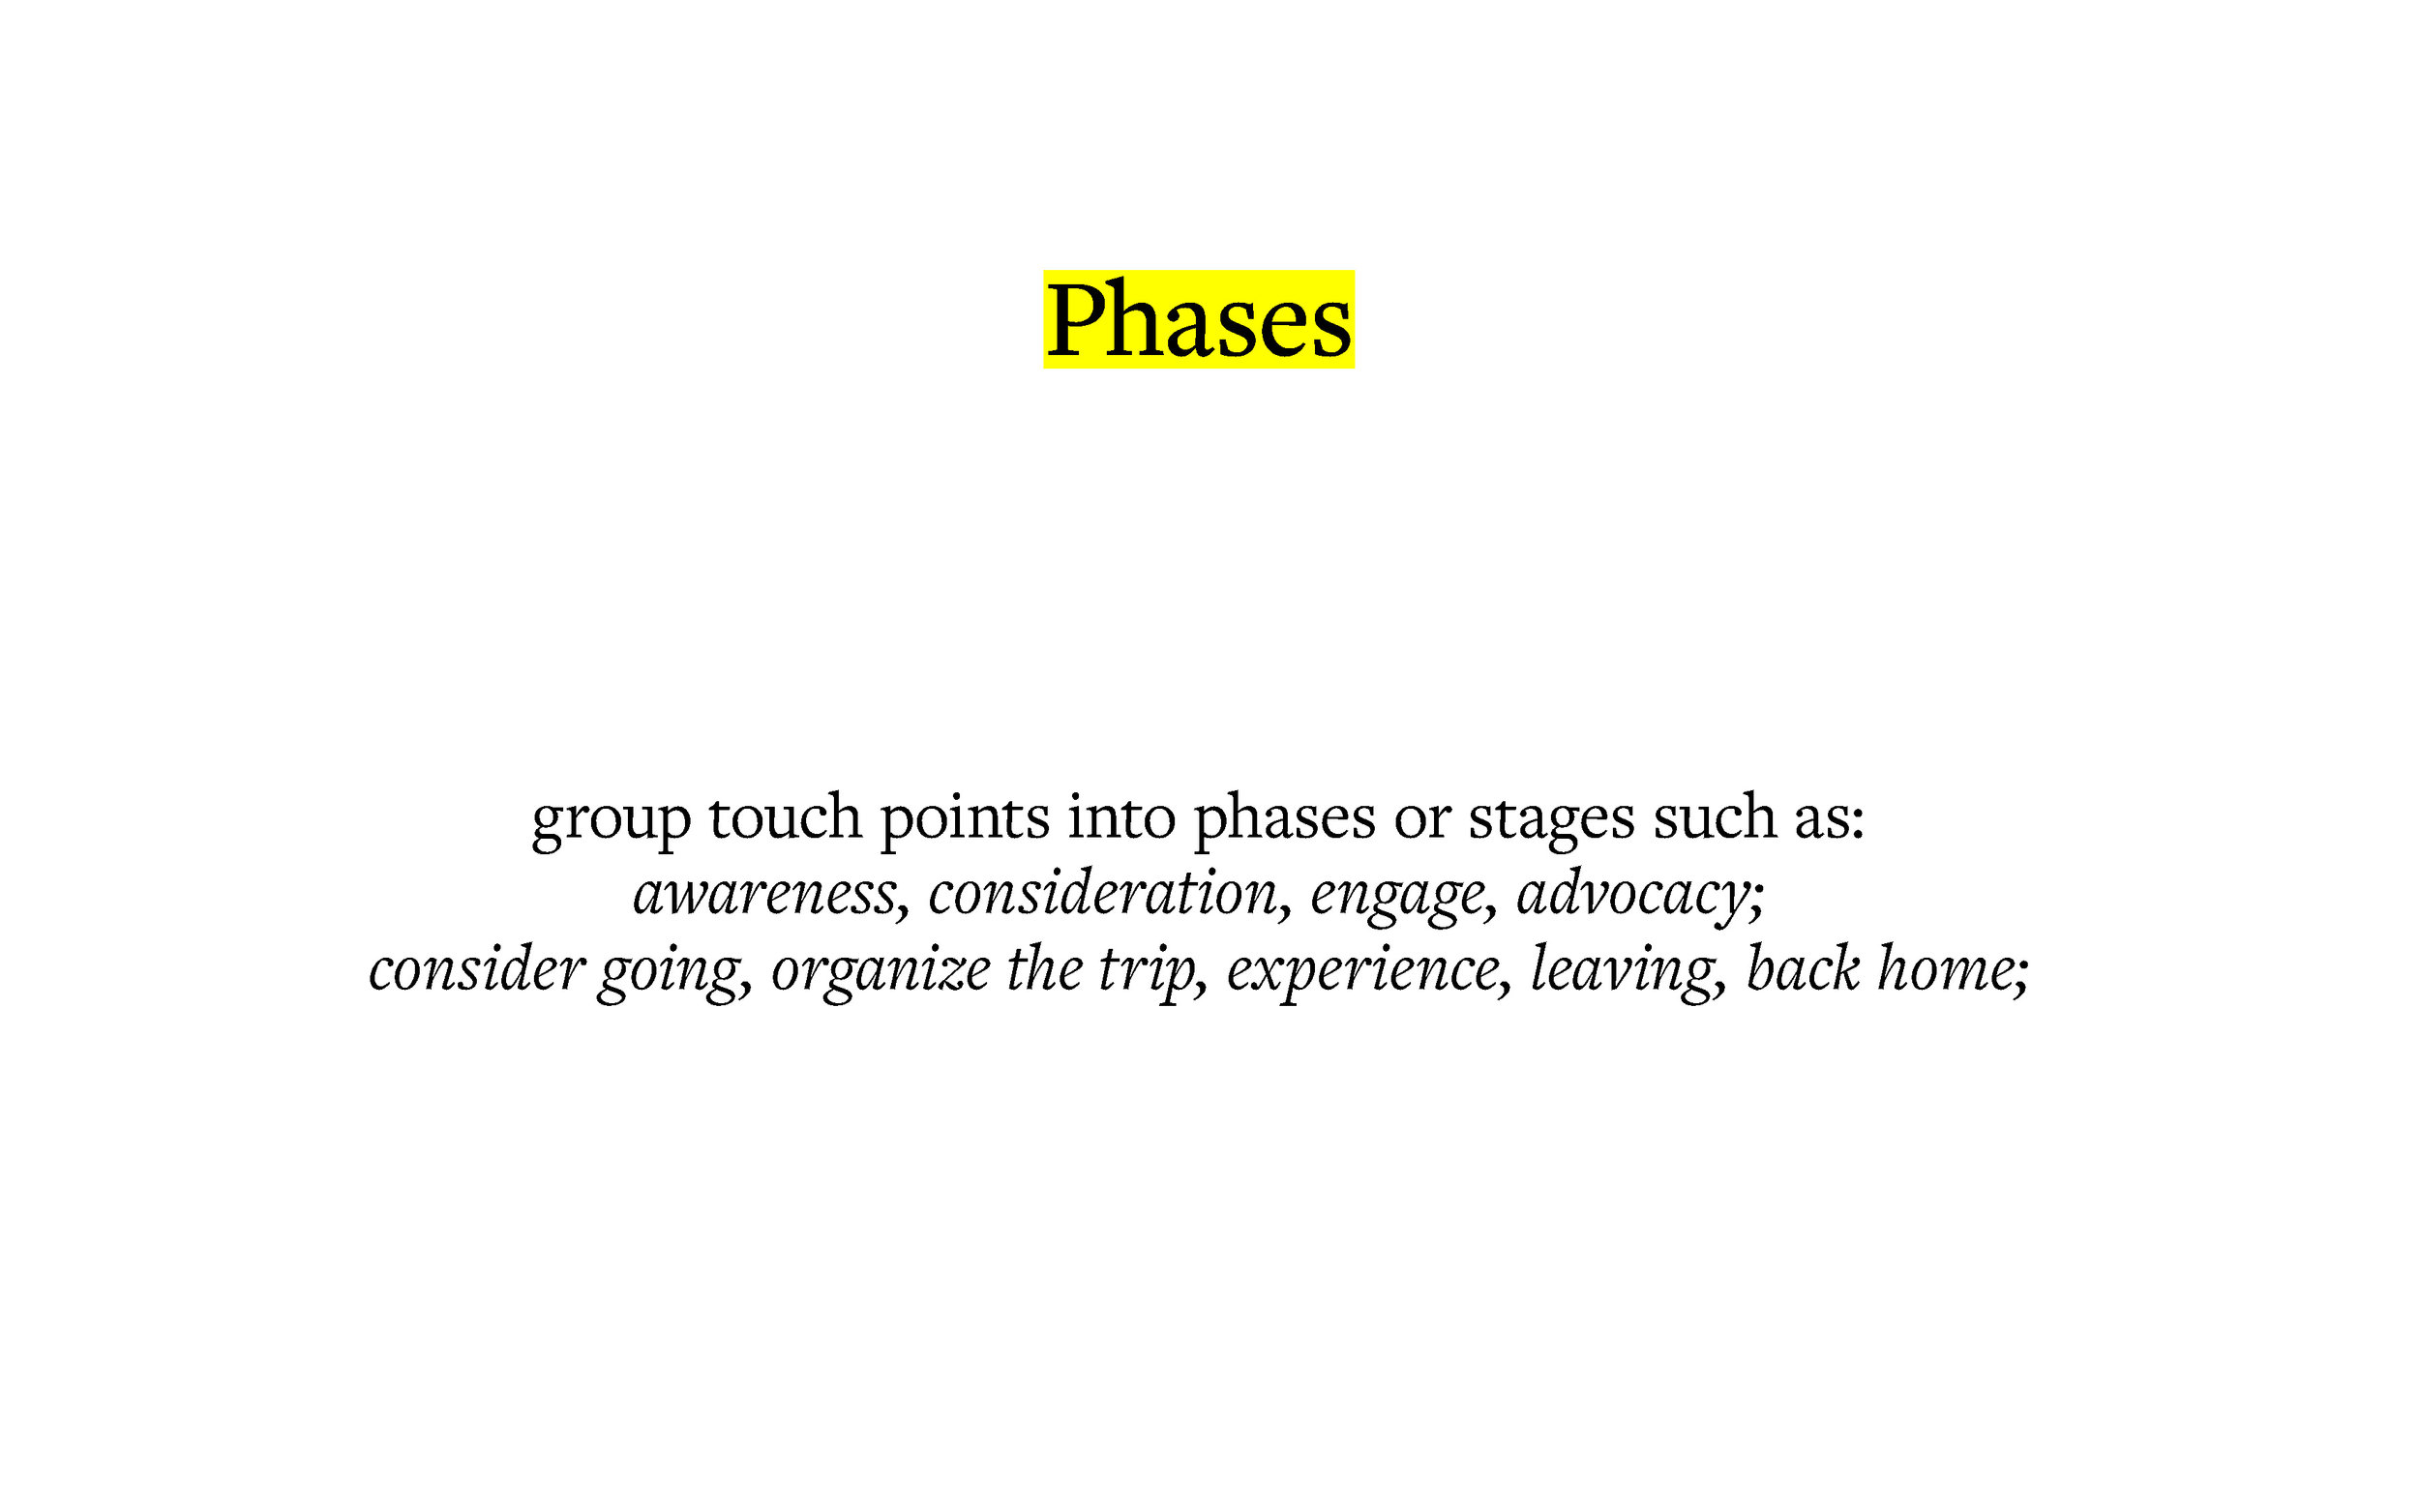 COMD371-12_lecture_w2_Page_34.jpg